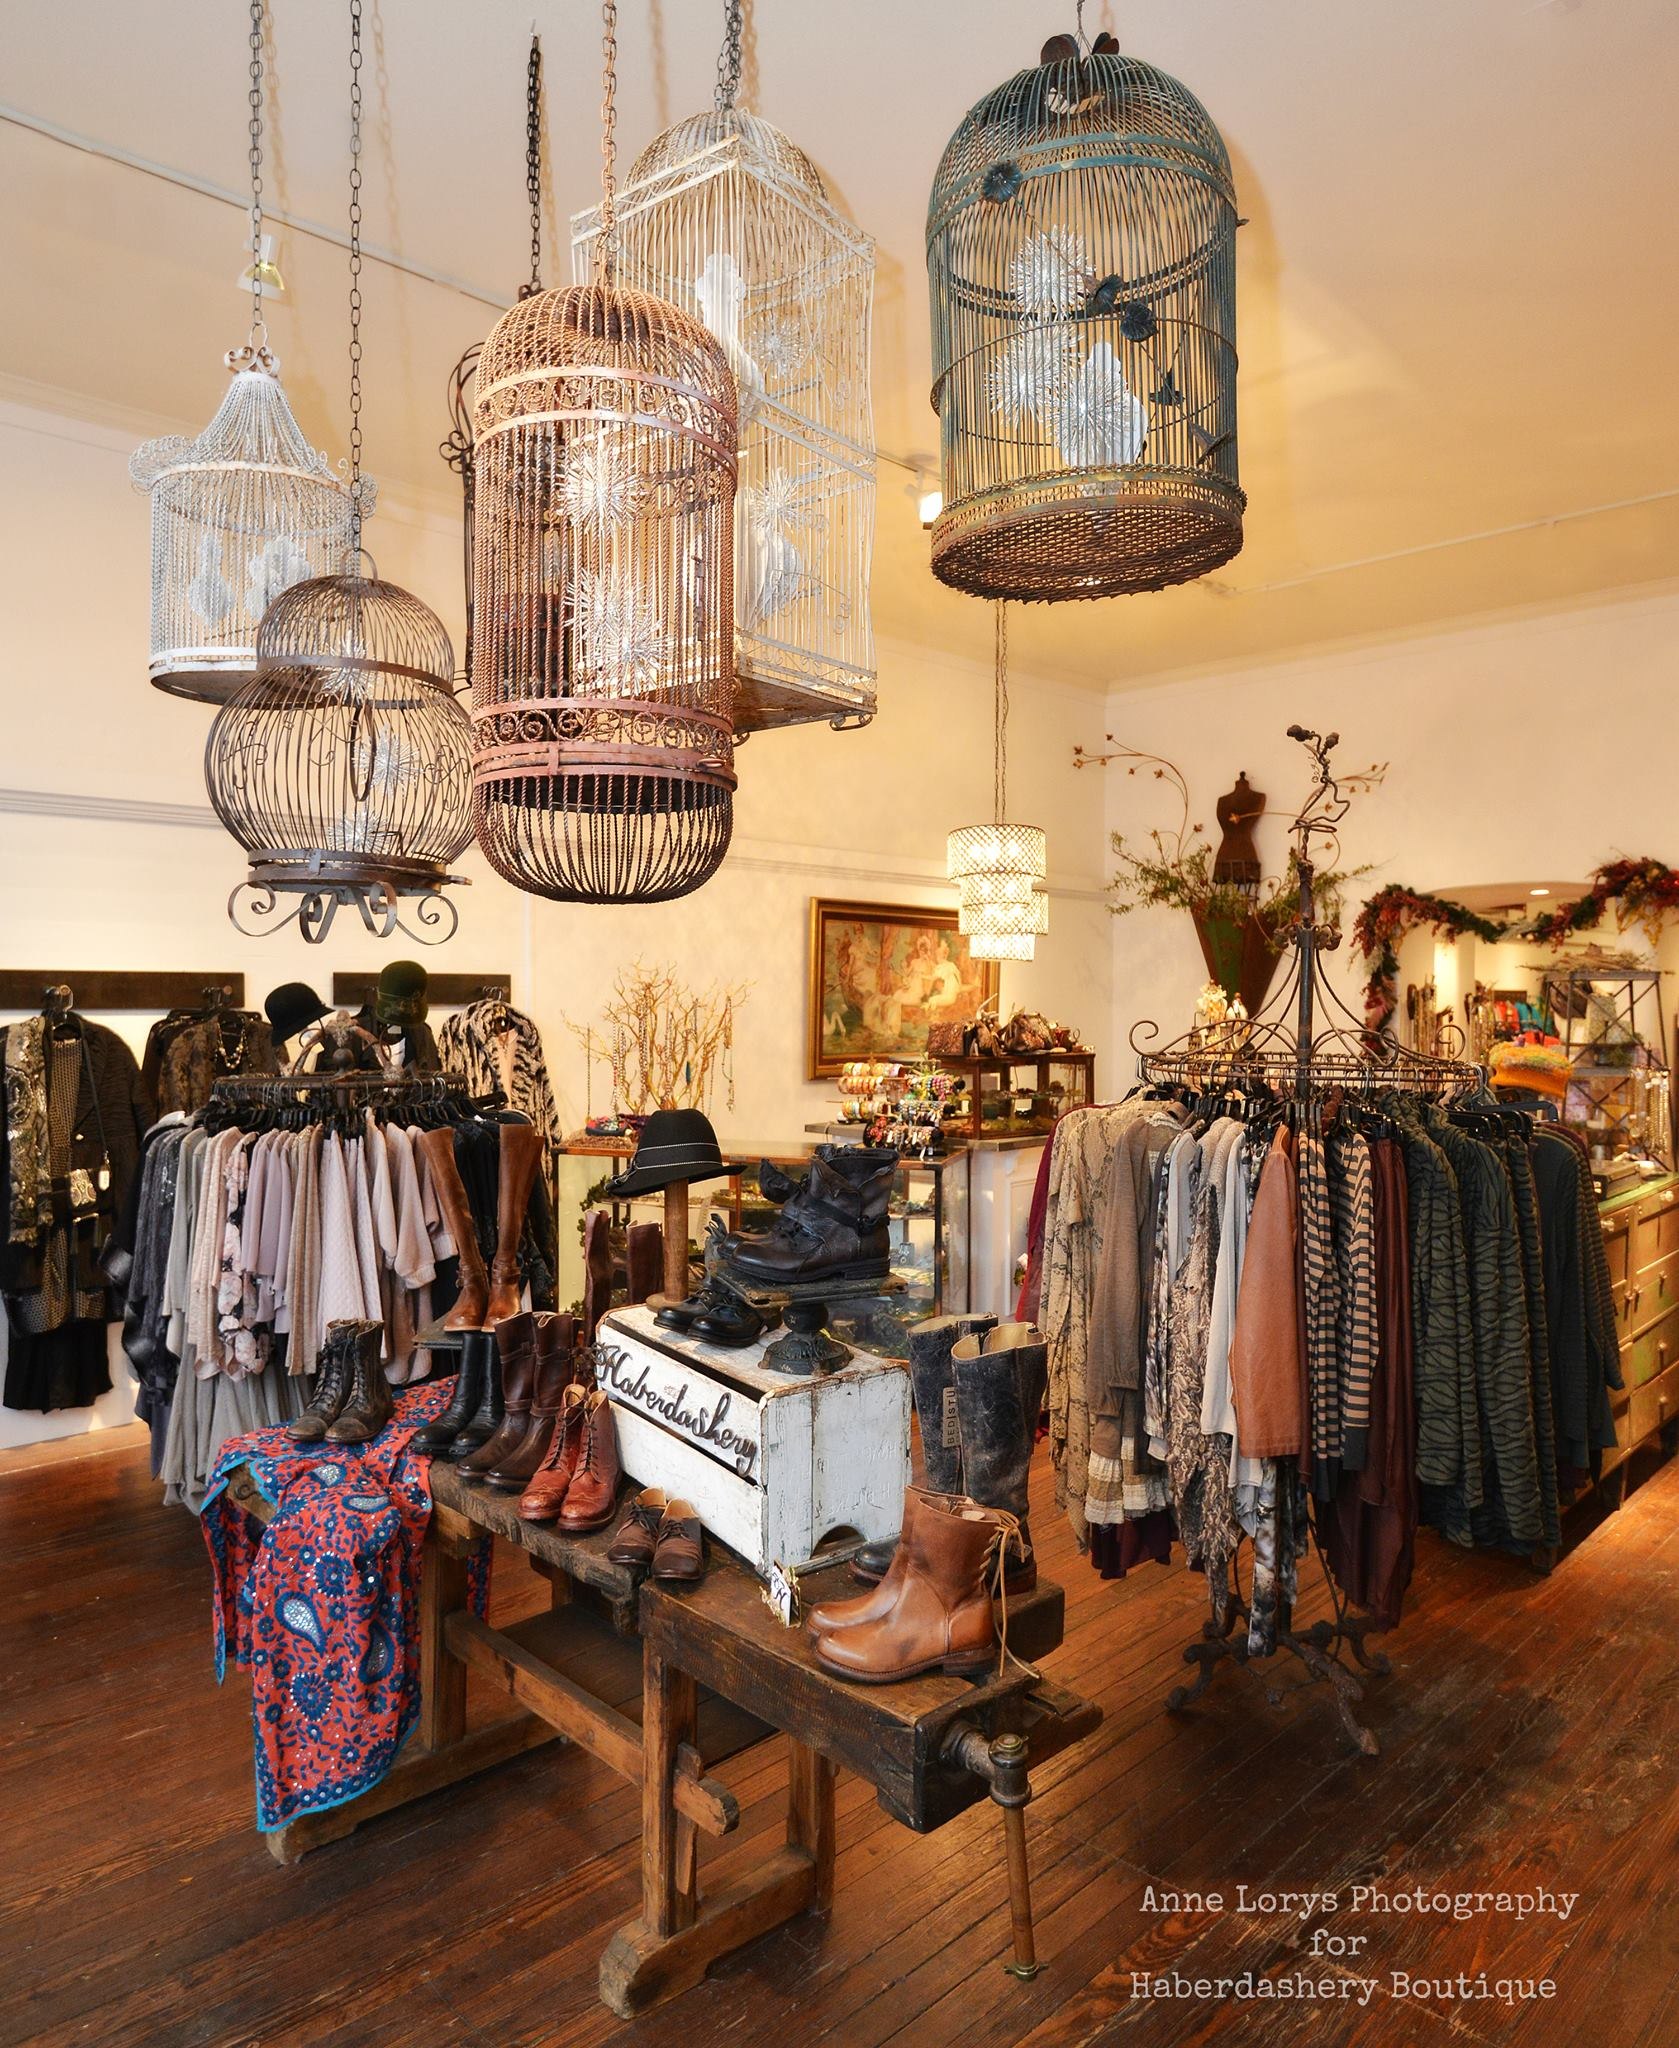 Featured Retailer: Haberdashery Boutique